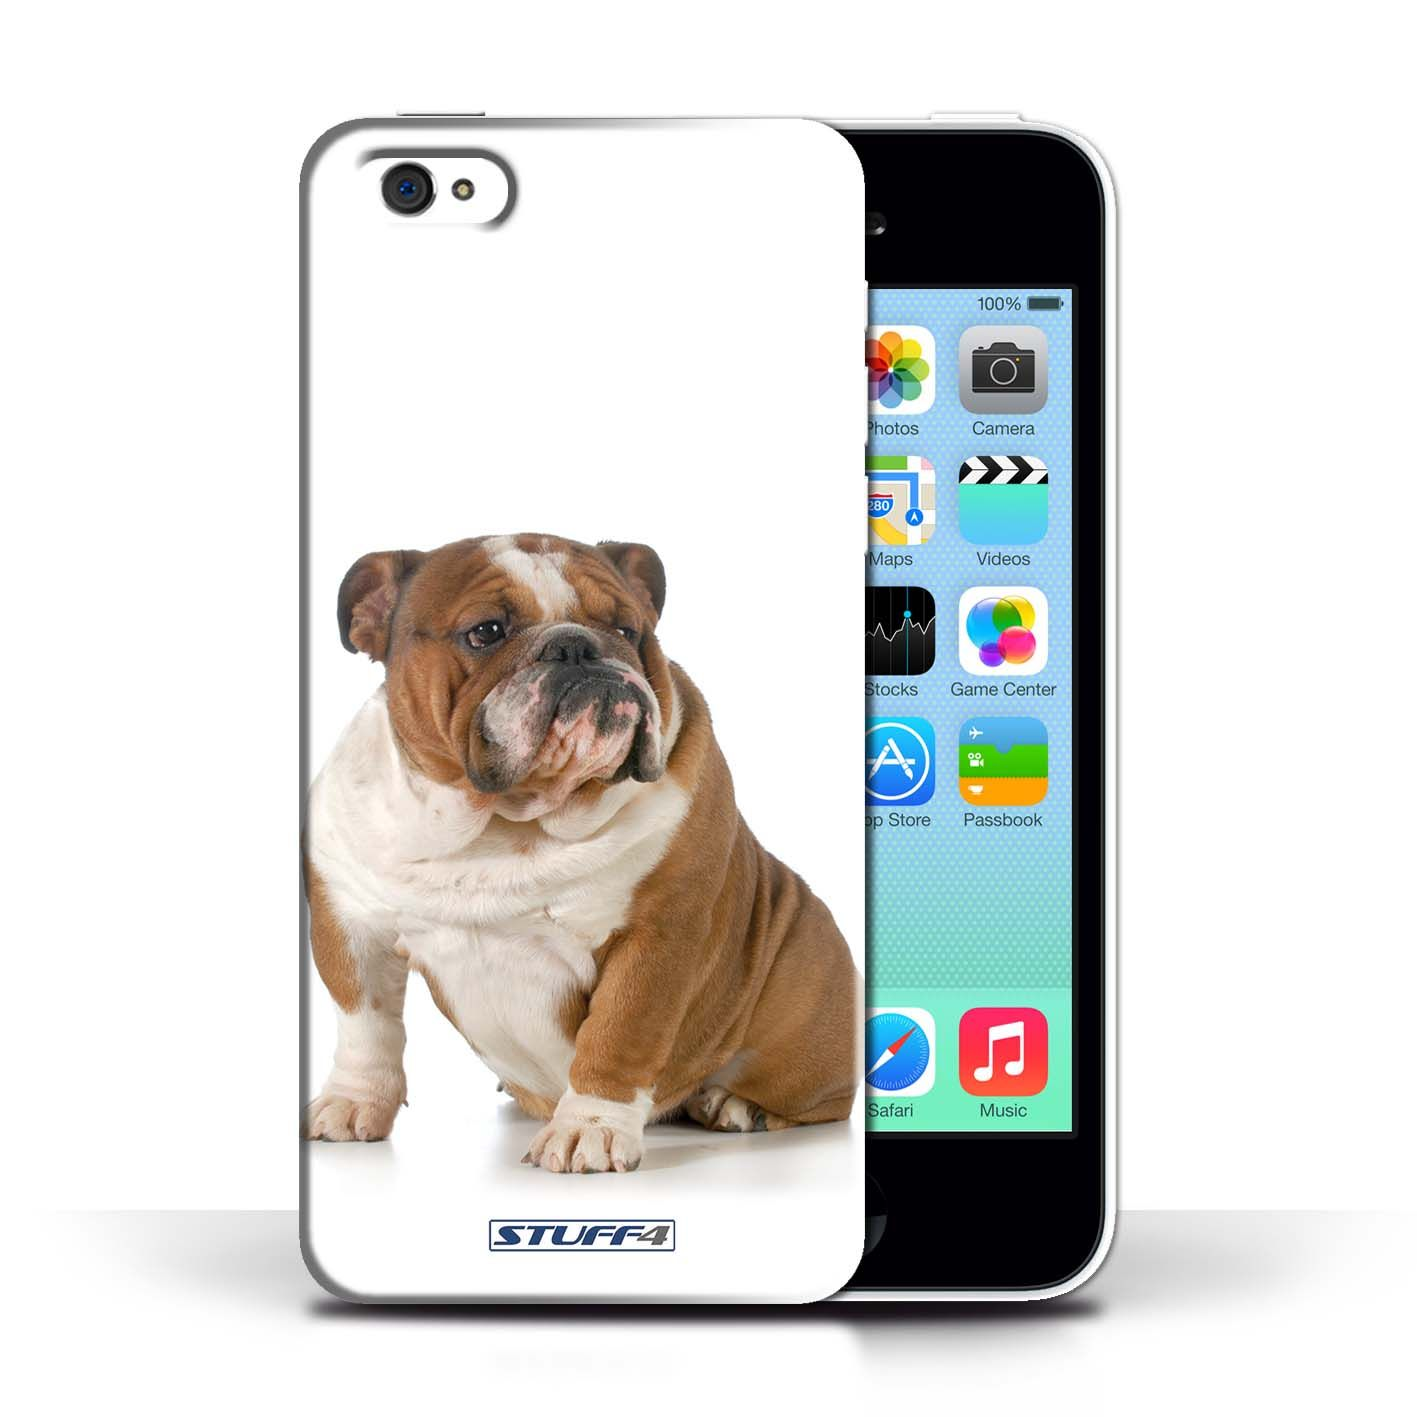 Designer Mobile Phone Case / Dog Breeds Collection / Bulldog #designer #case #cover #iphone #smartphone #dog #animal #bulldog